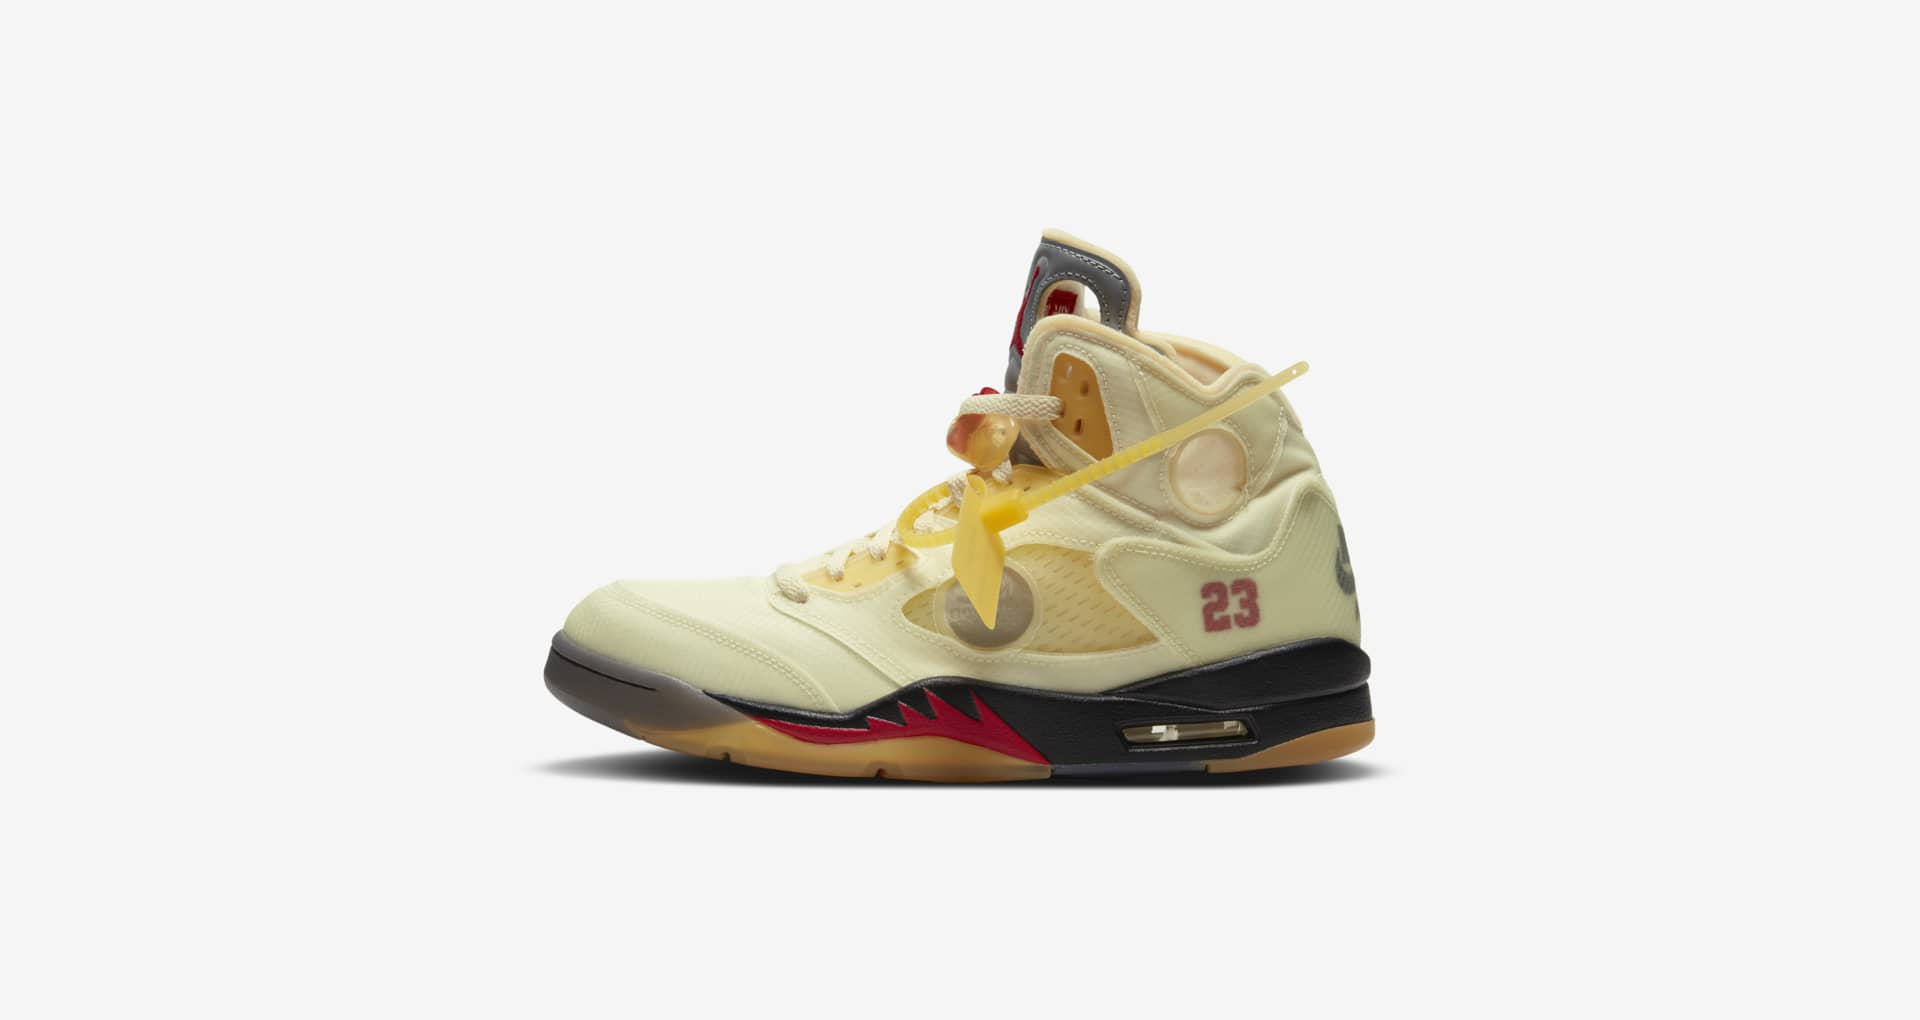 01-air-jordan-5-off-white-sail-dh8565-100